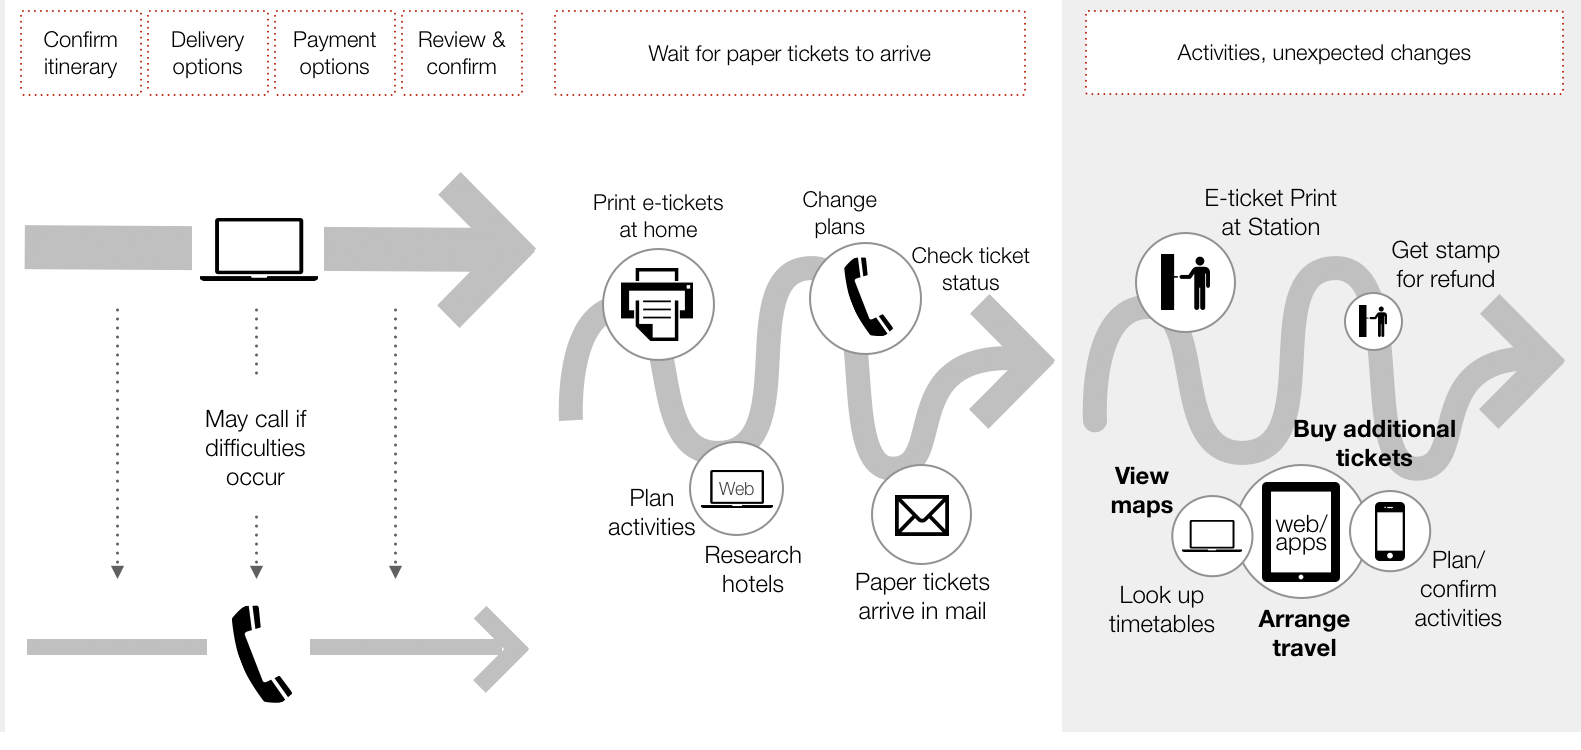 Anatomy Of An Experience Map UX Articles By UIE - Experience map example